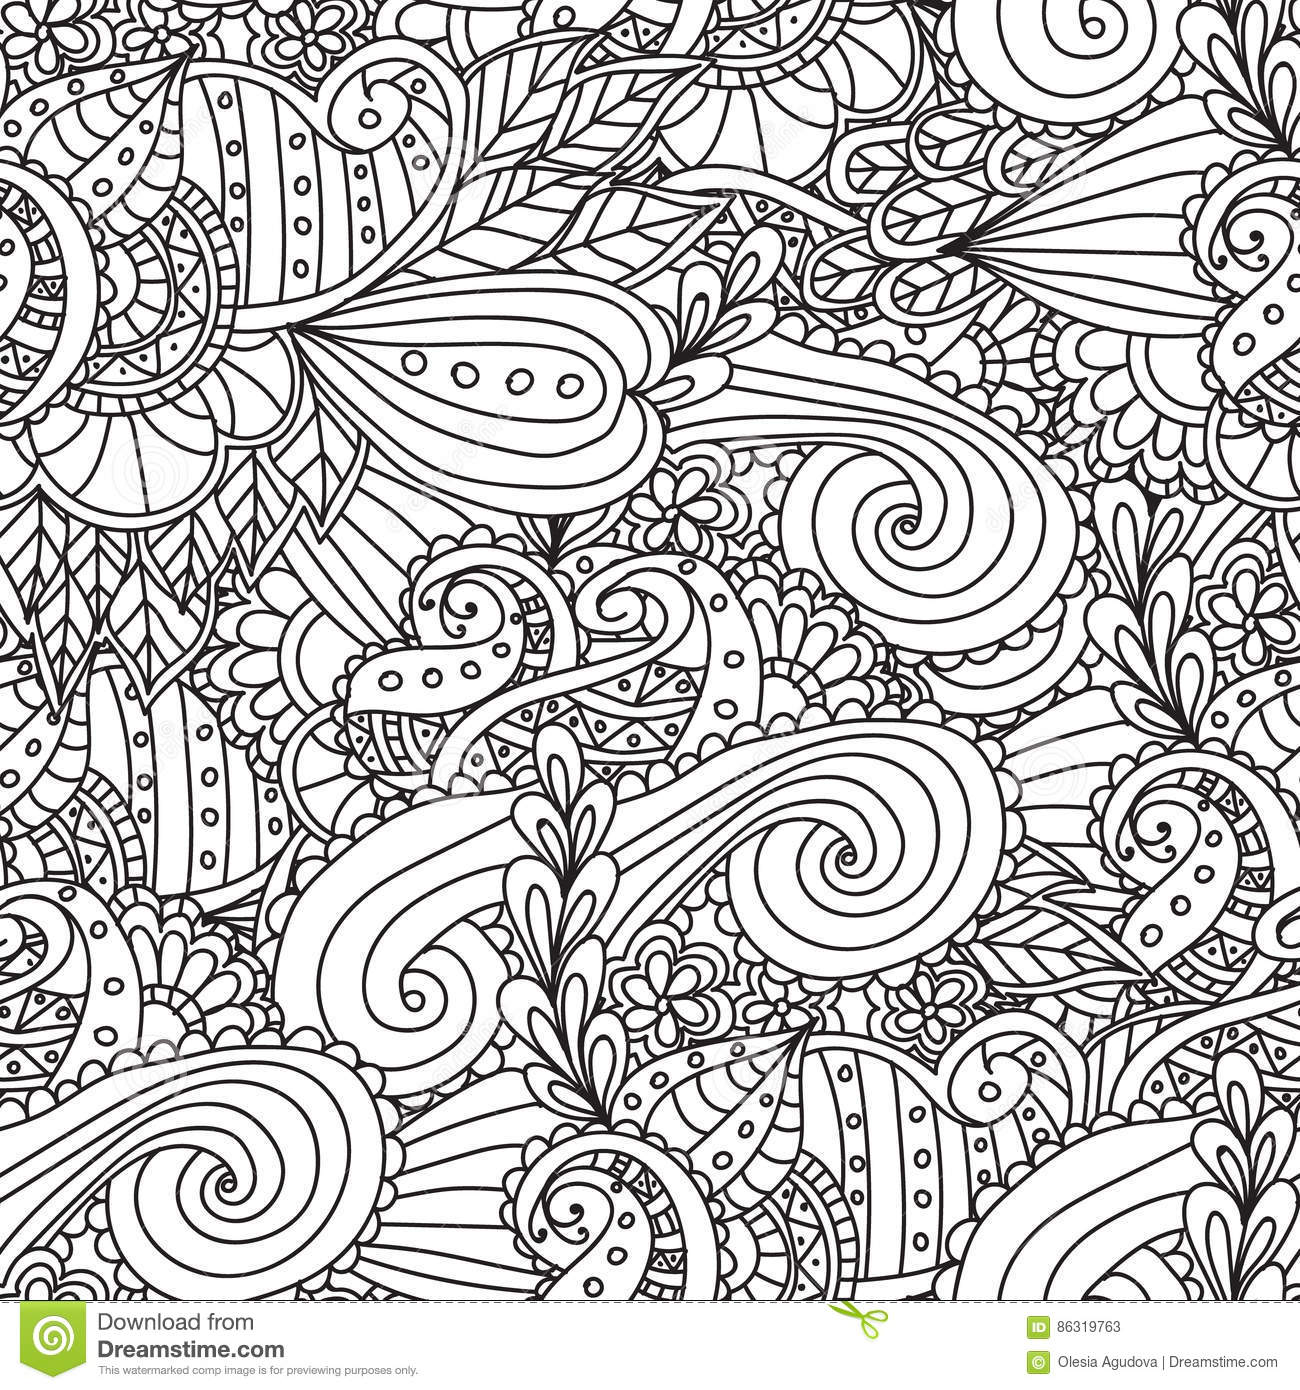 Coloring Pages For AdultsDecorative Hand Drawn Doodle